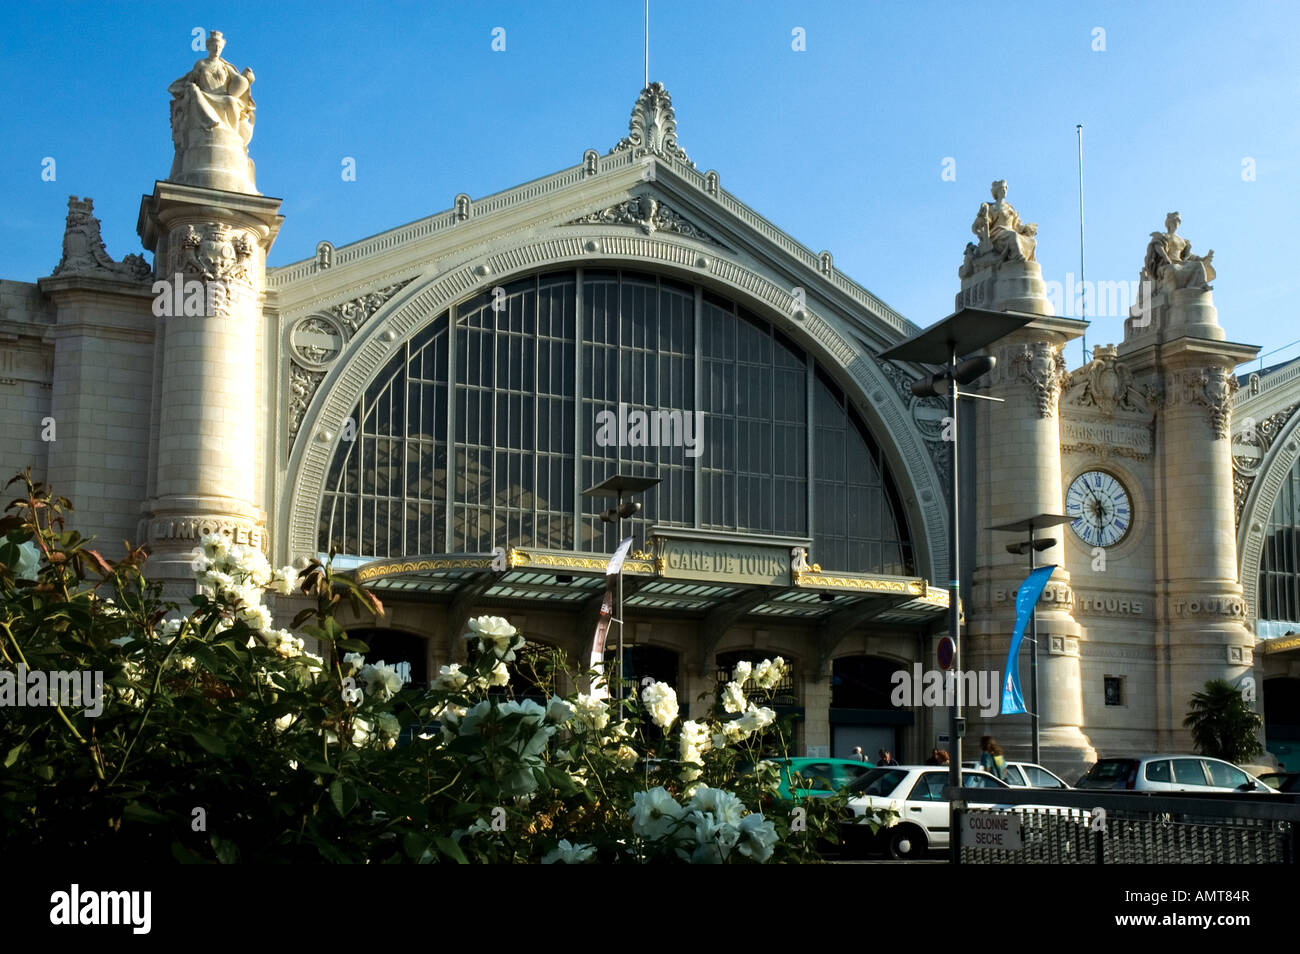 Gare Sncf Daytime Shot Of Tours Railway Station Gare Sncf France Stock